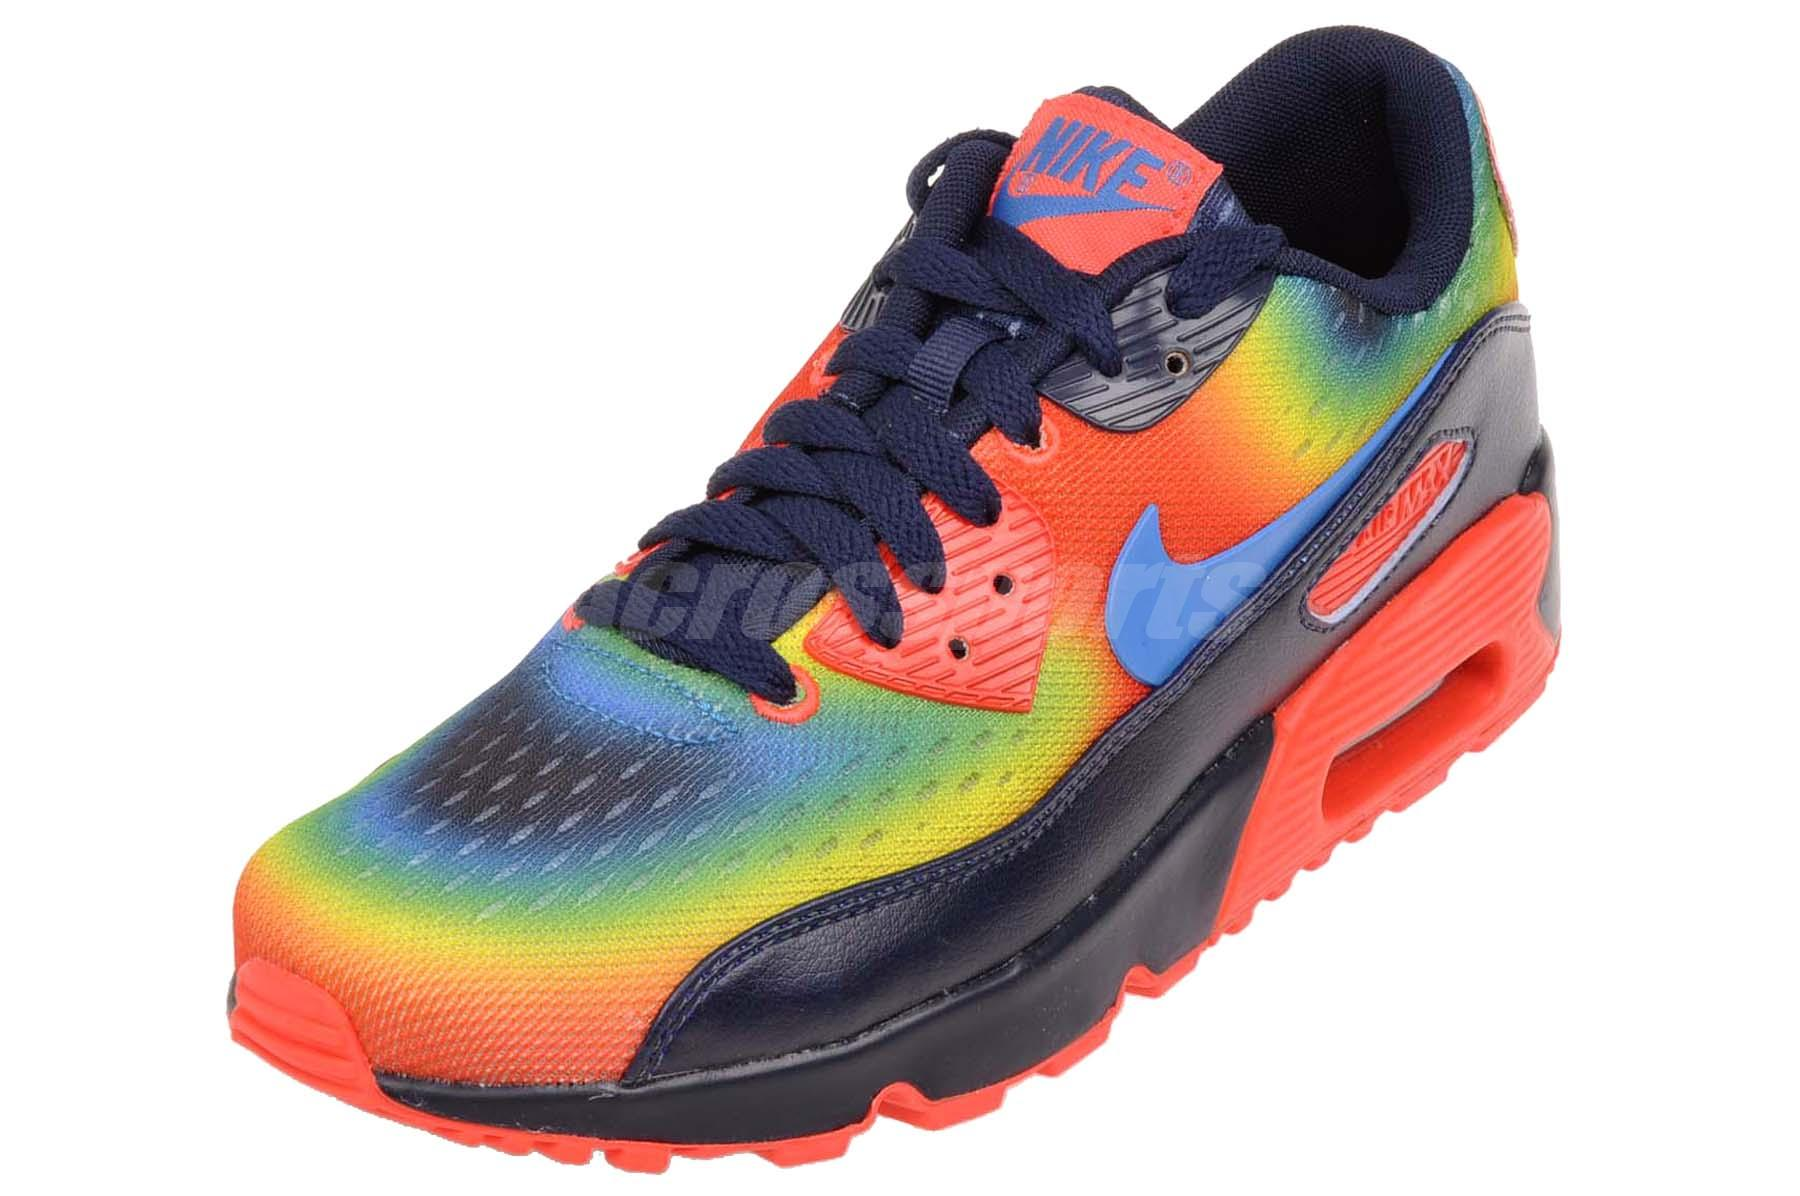 nike air max 90 qs gs kids youth boy girls running shoes. Black Bedroom Furniture Sets. Home Design Ideas